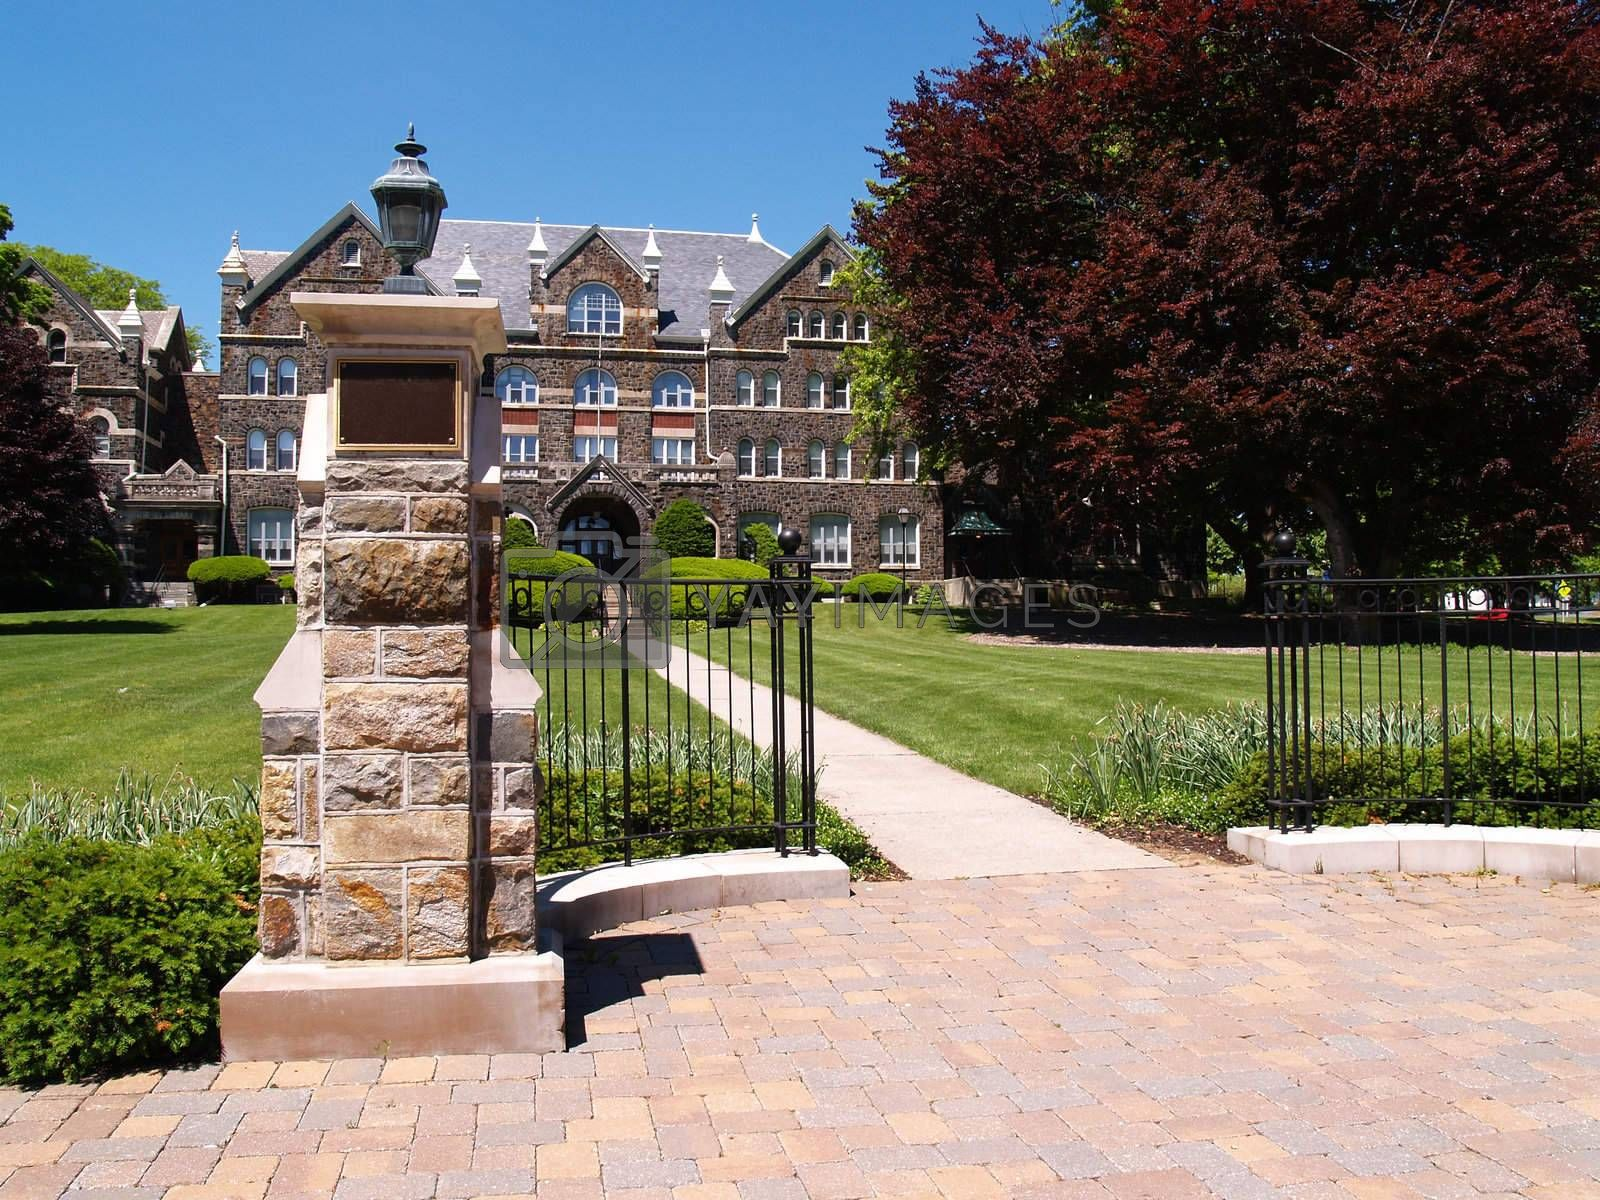 a brick sidewalk and iron gate in front of an old stone college